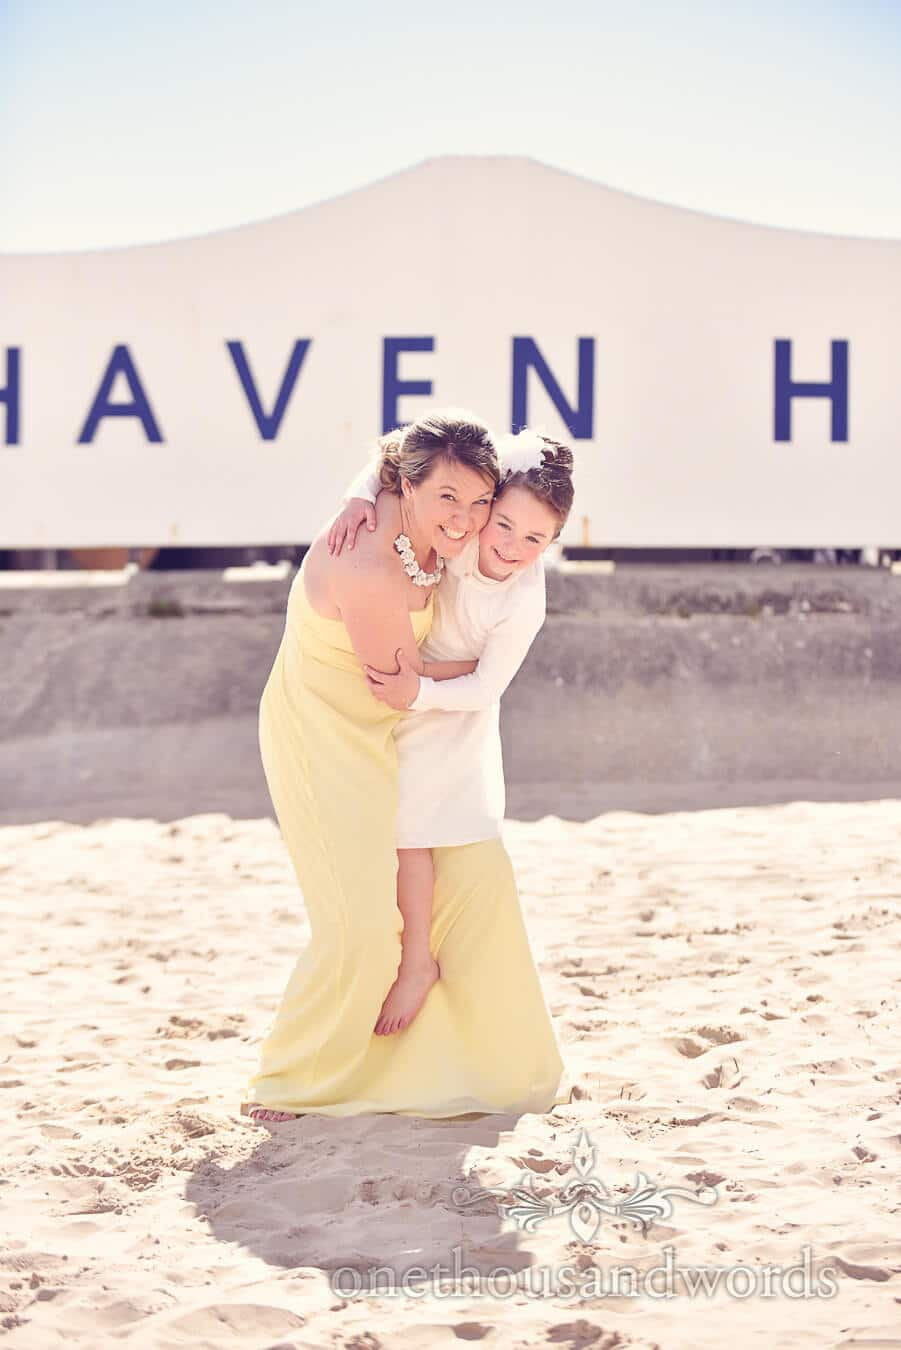 Yellow Bridesmaids dress and flower girl at Haven hotel wedding